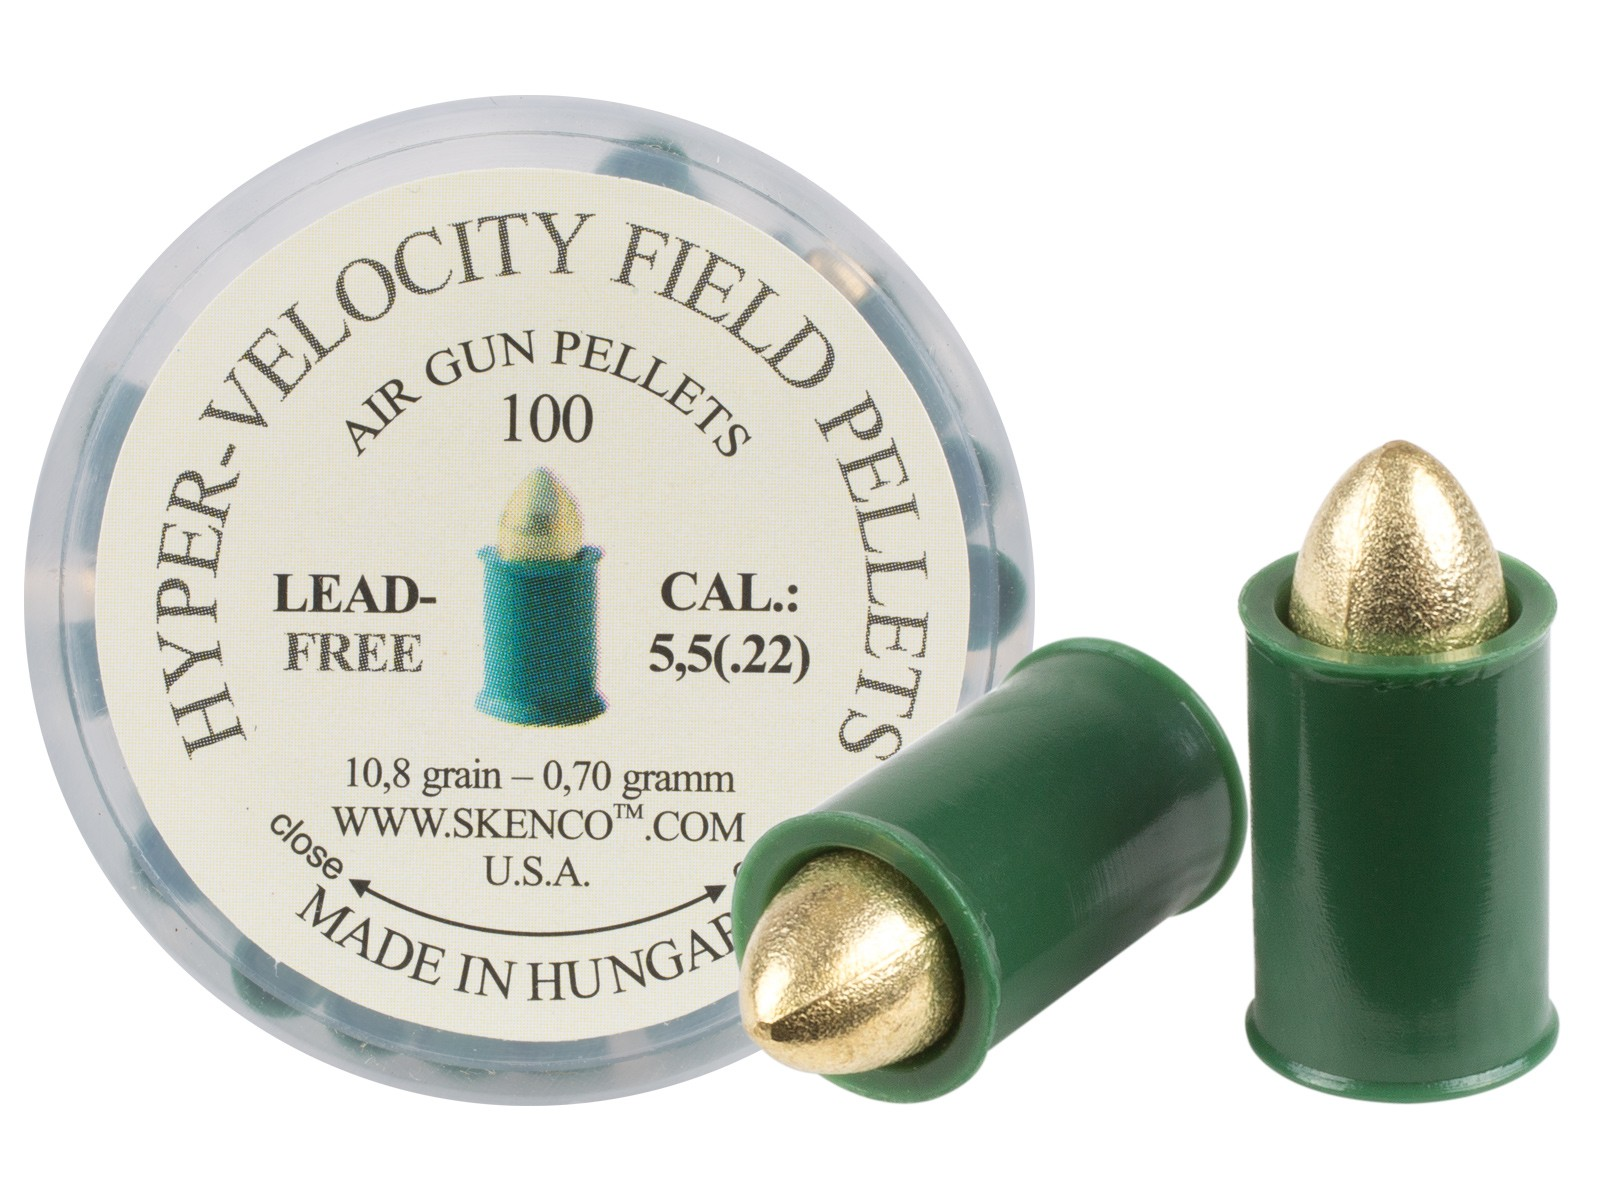 Hyper-Velocity Field Pellets, Type 1 for Standard Guns, .22 Cal, 10.8 Grains, Pointed, Lead-Free, 100ct